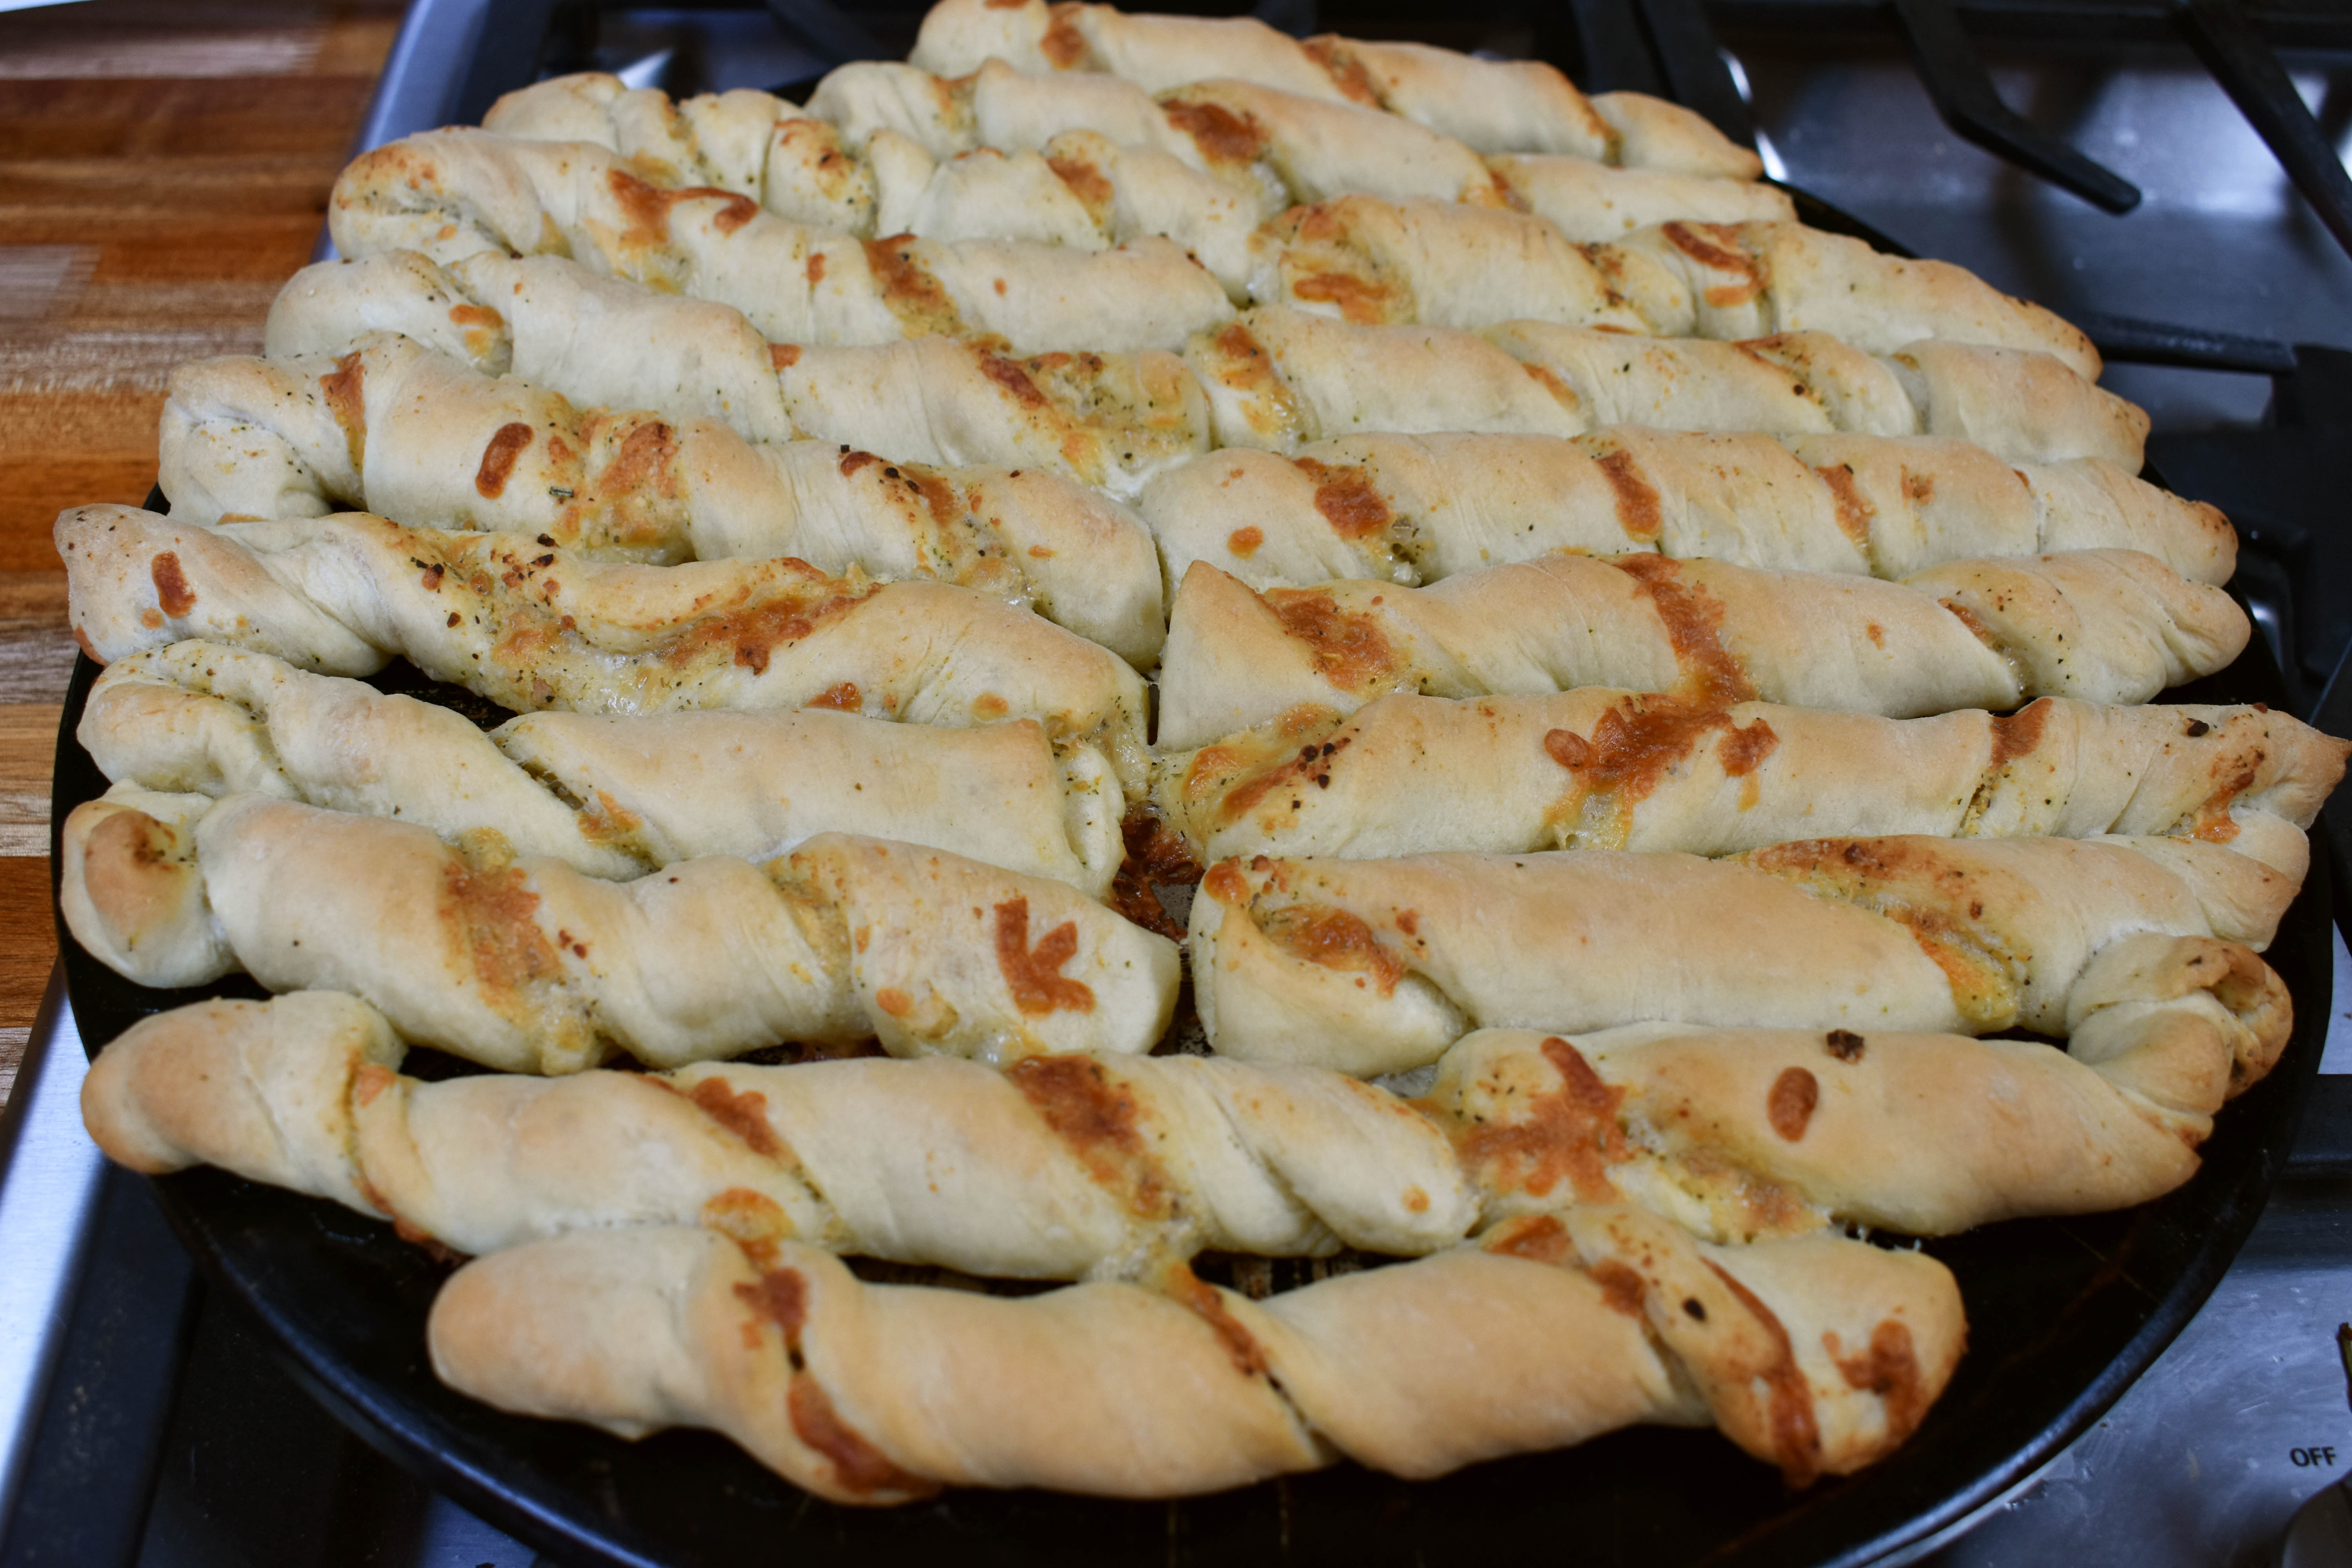 French Bread or Cheesy Garlic Bread Twists